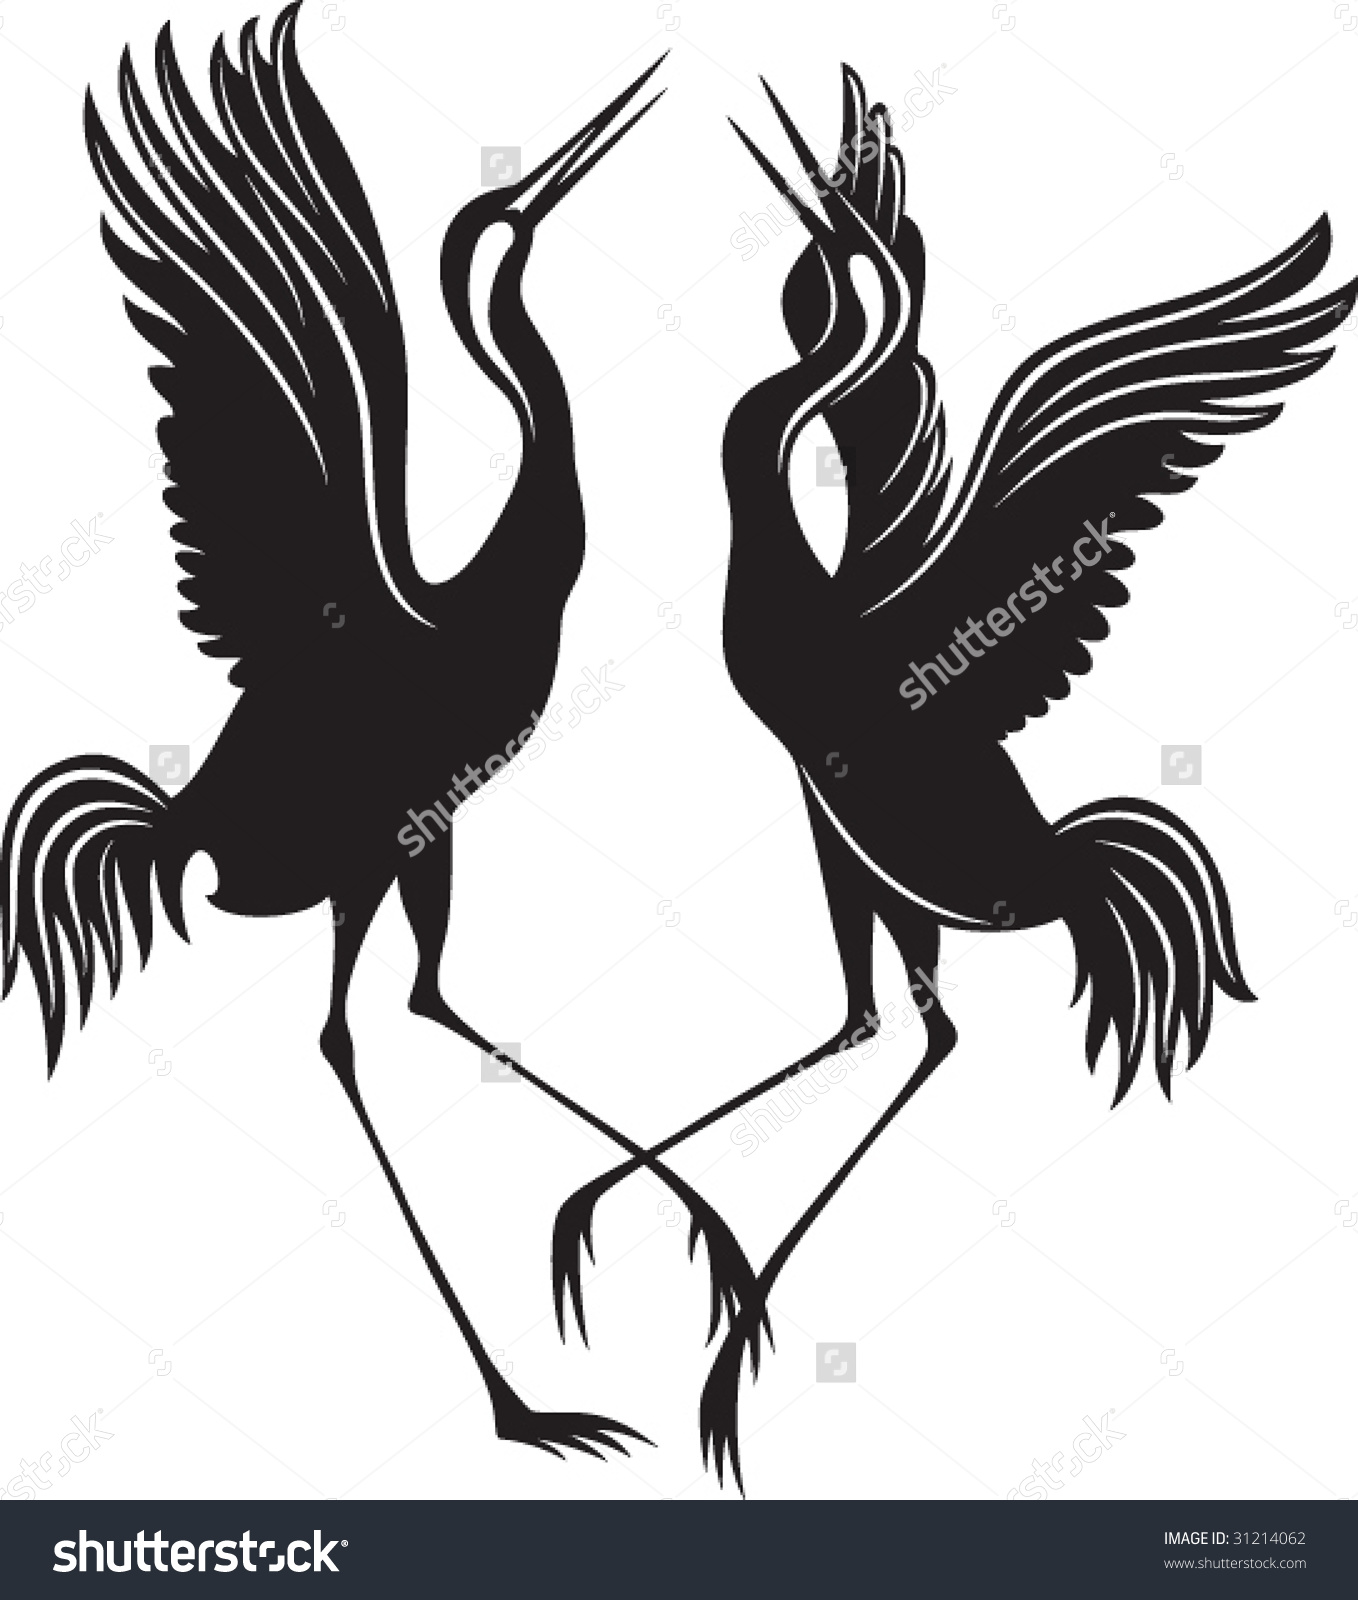 Stork couple clipart #3